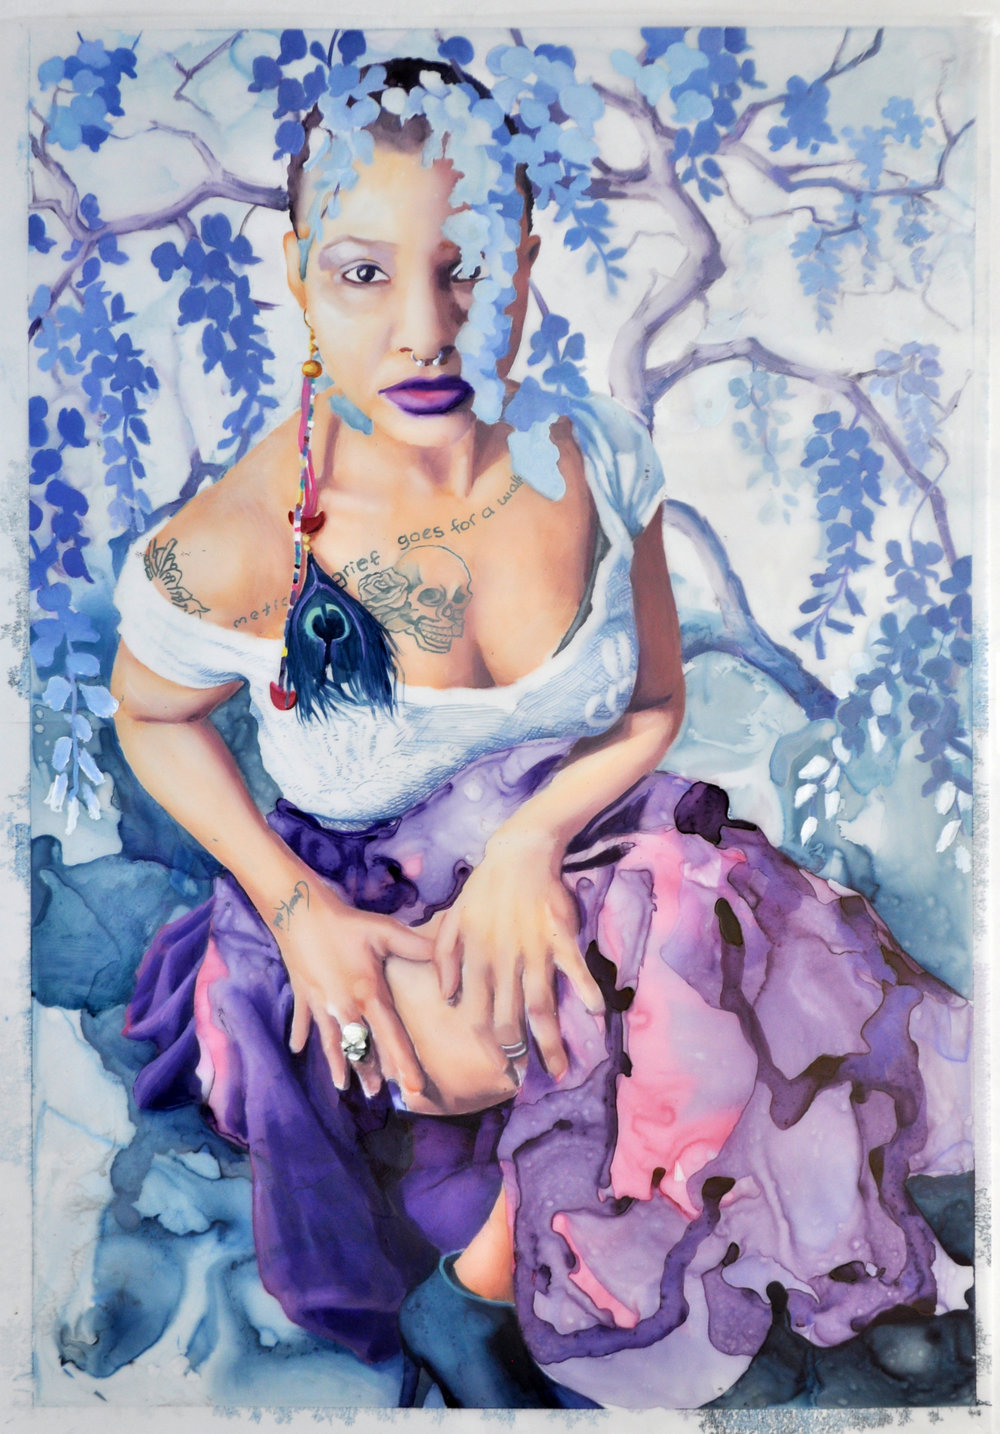 Joyce_2014_Ink and oil on mylar_32 x 21 1-2inches.jpg